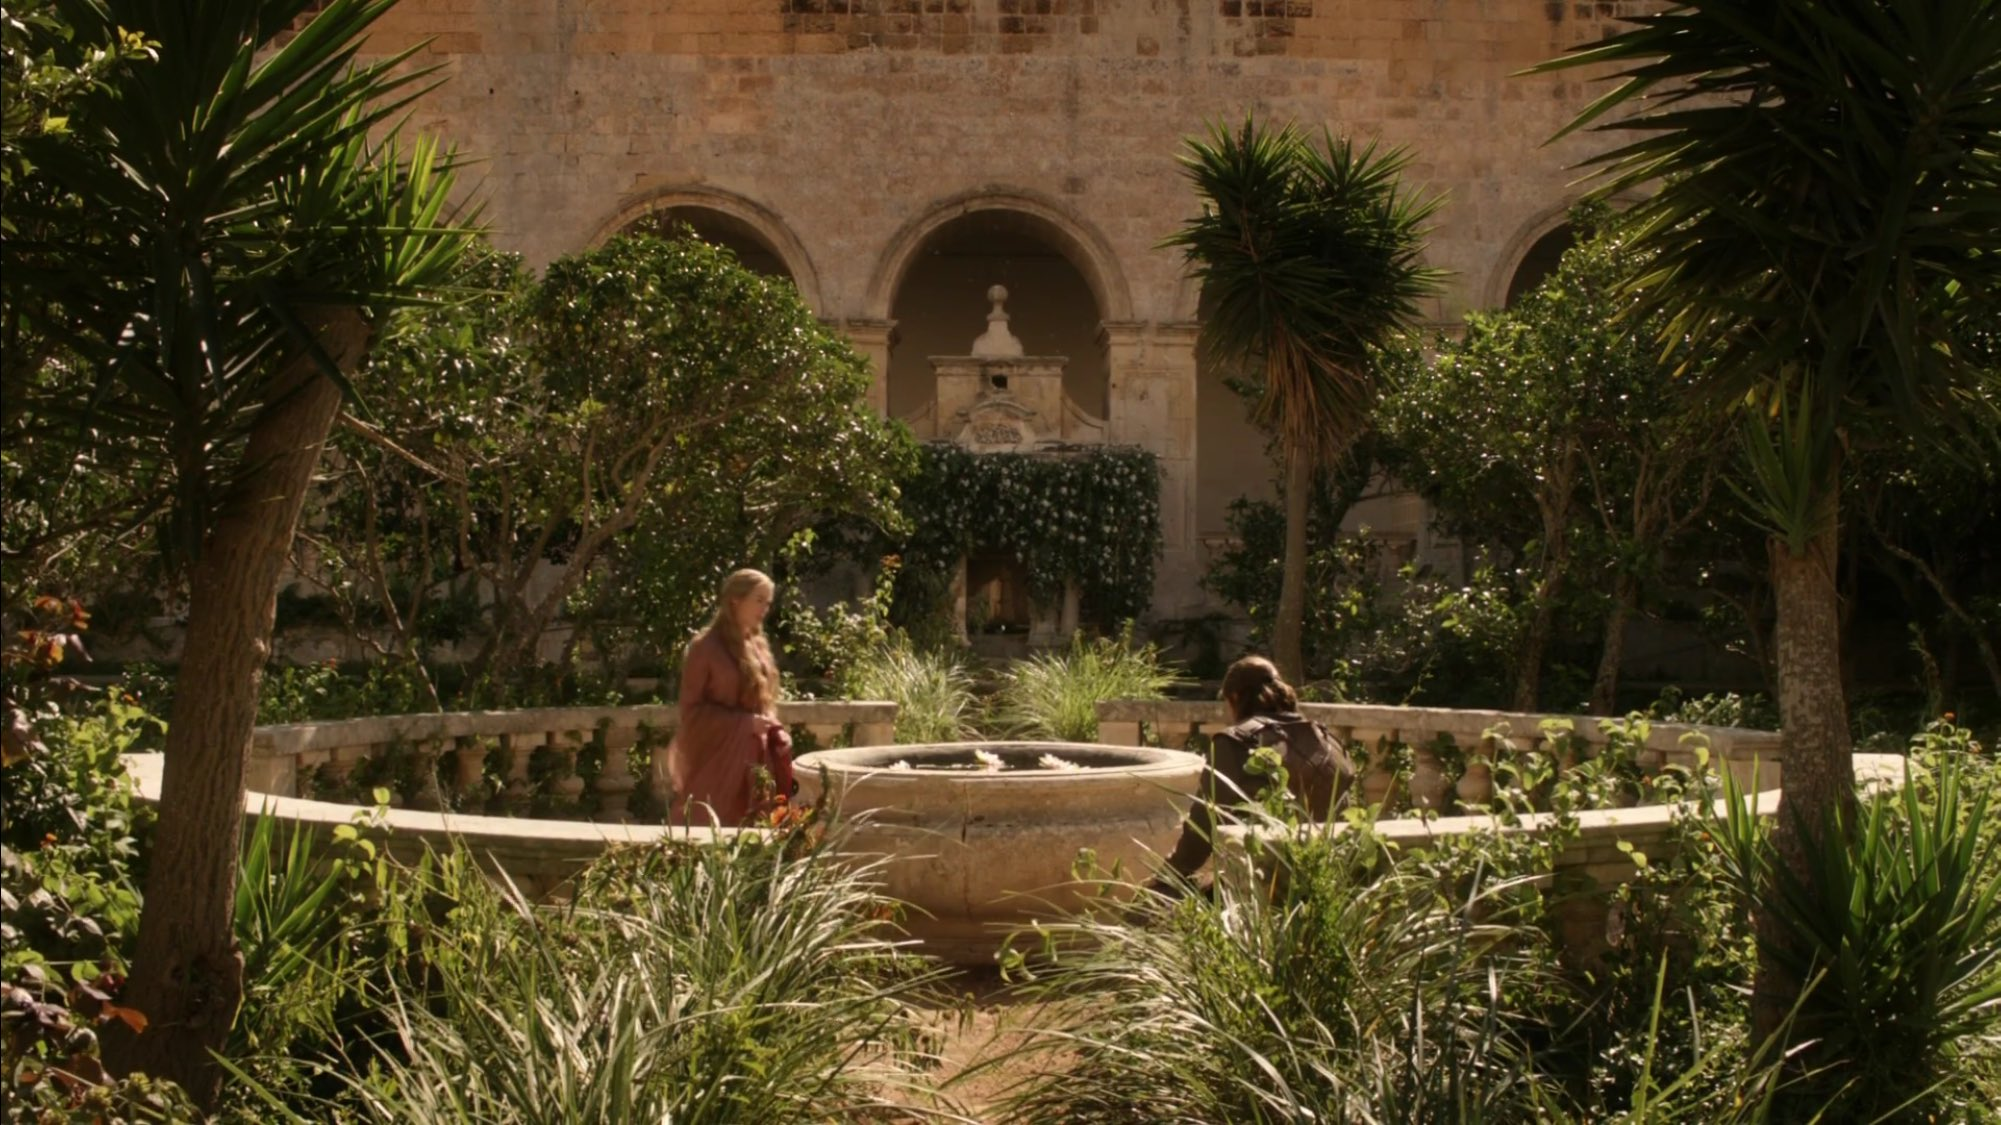 Anyway, over in Kingslanding Cersei and Ned meet in the gardens for a showdown, of sorts. https://t.co/uVEKhujnXv